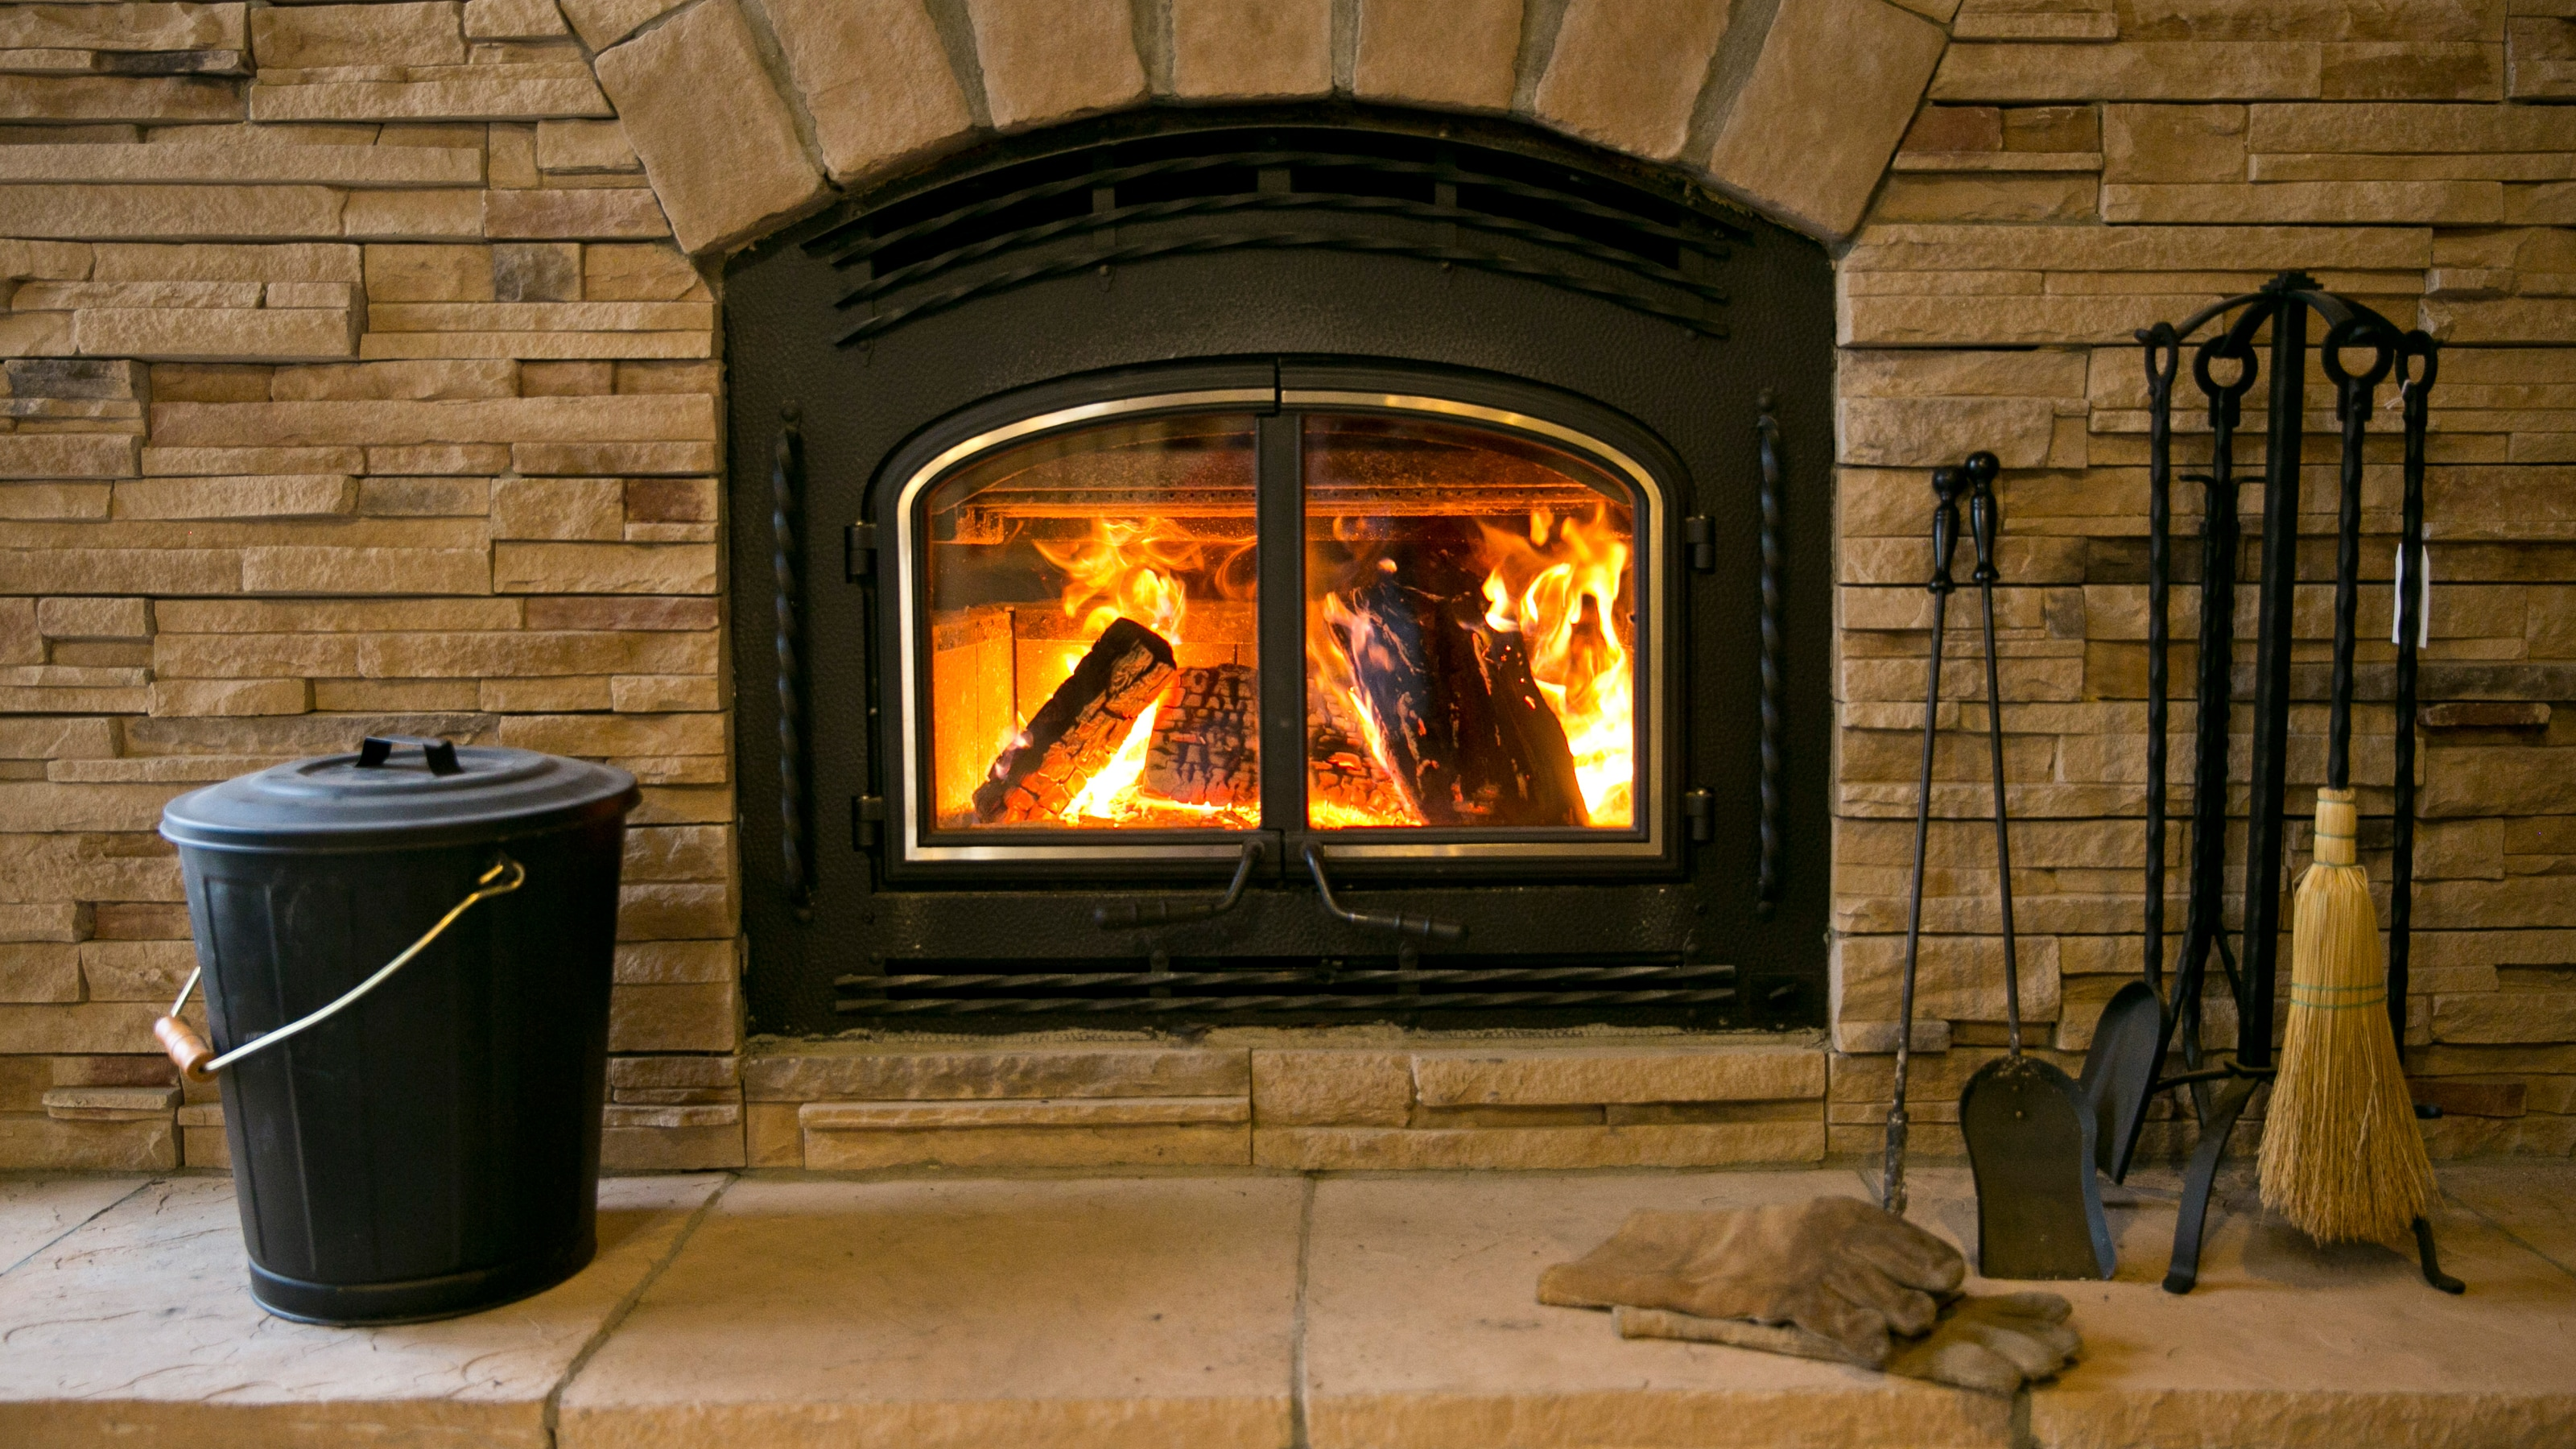 Converting A Fireplace to A Wood Stove Best Of How to Convert A Gas Fireplace to Wood Burning